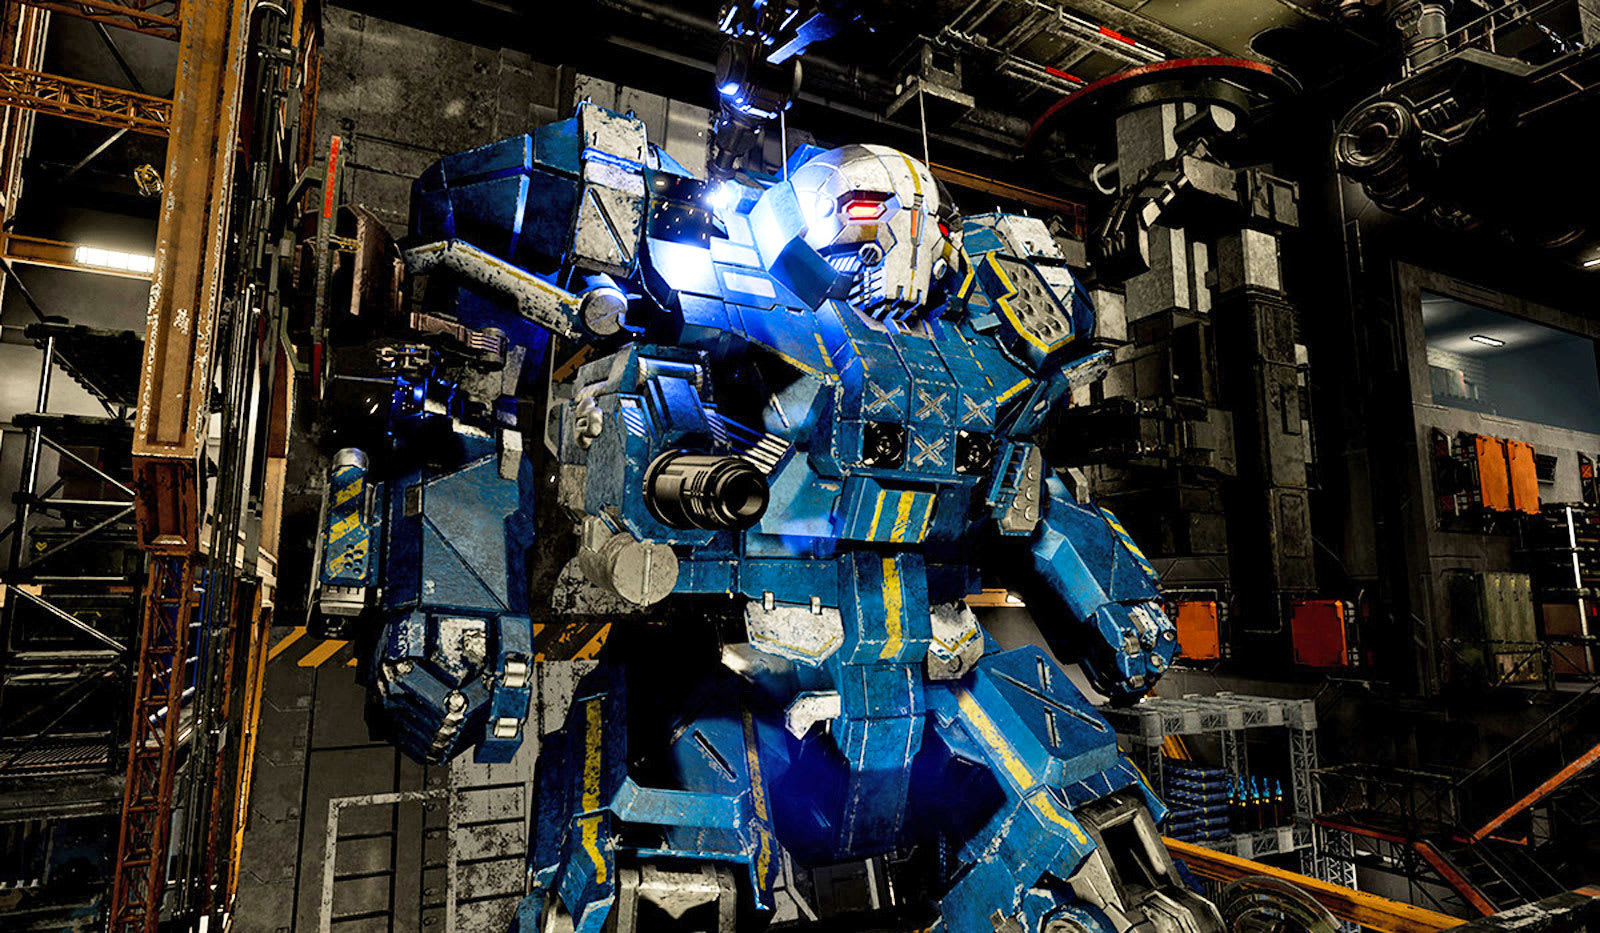 MechWarrior 5' will revolve around co-op and user mods